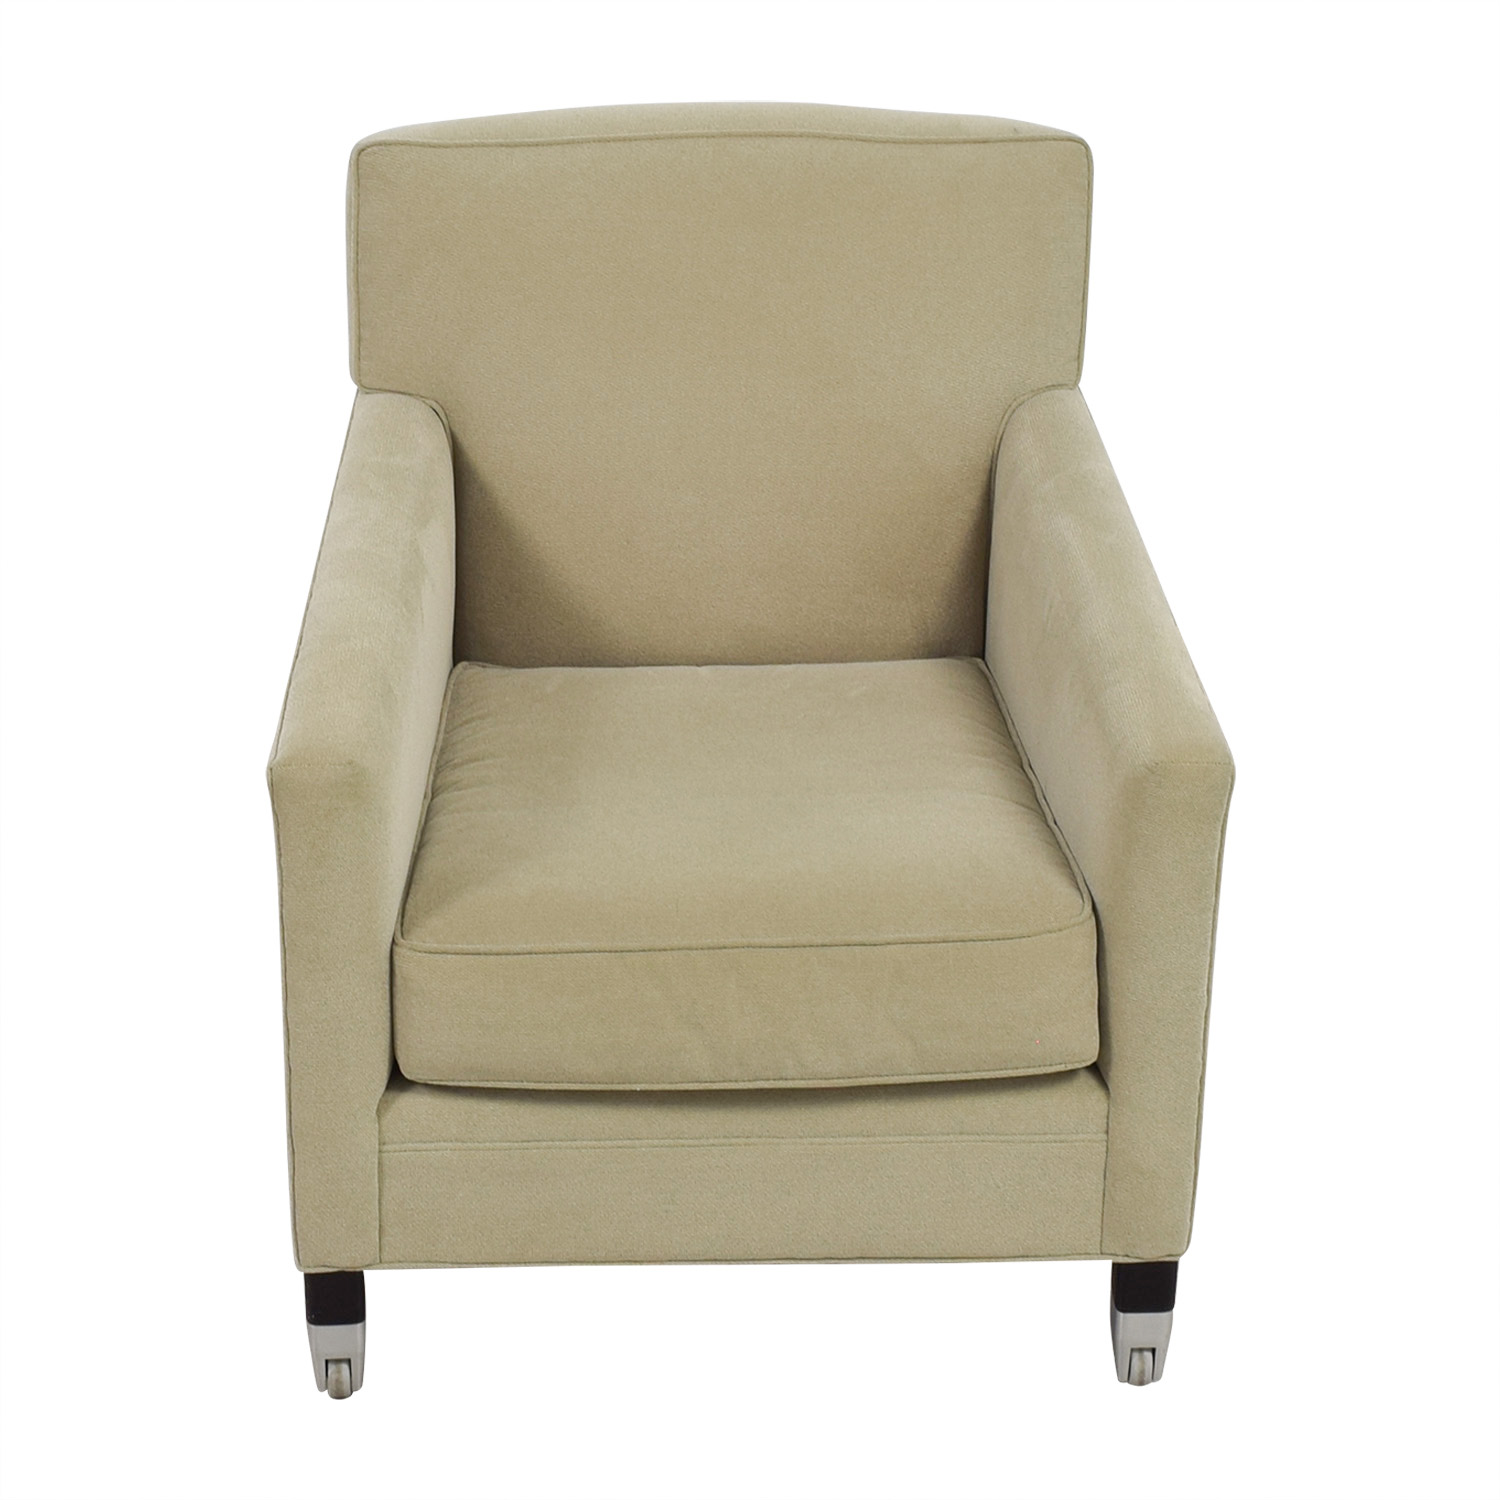 Mitchell Gold + Bob Williams Mitchell Gold + Bob Williams Light Green Accent Chair for sale